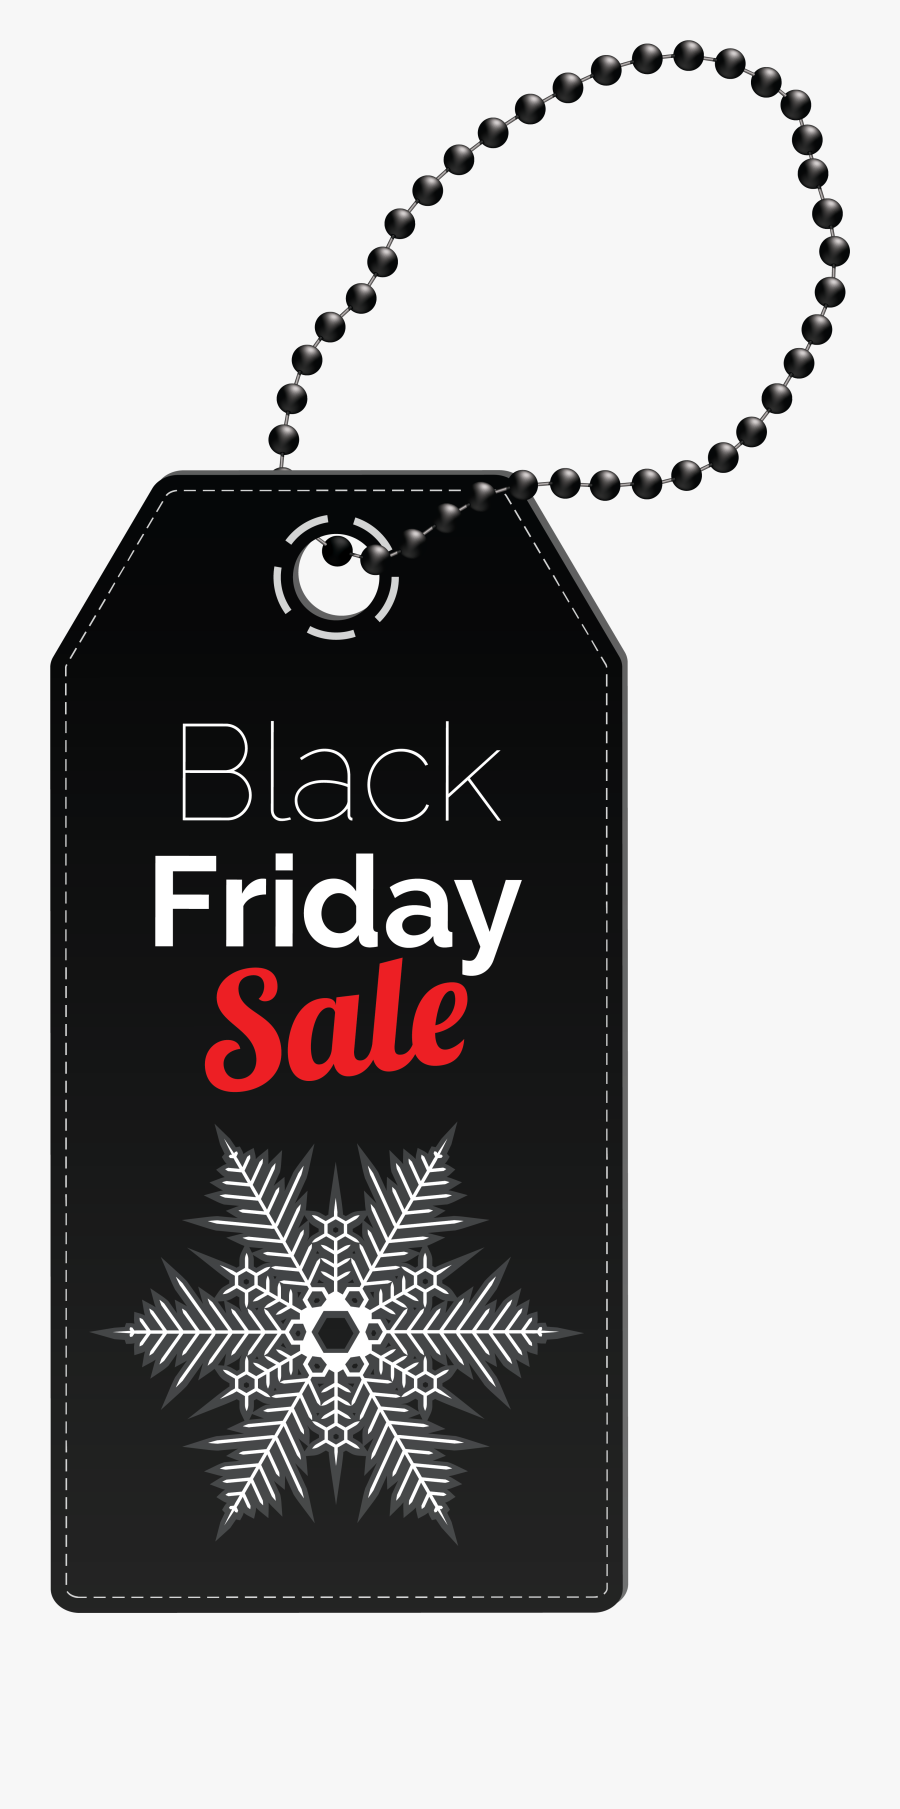 Tag Png Transparent Image - Black Friday Sale Tag Png, Transparent Clipart